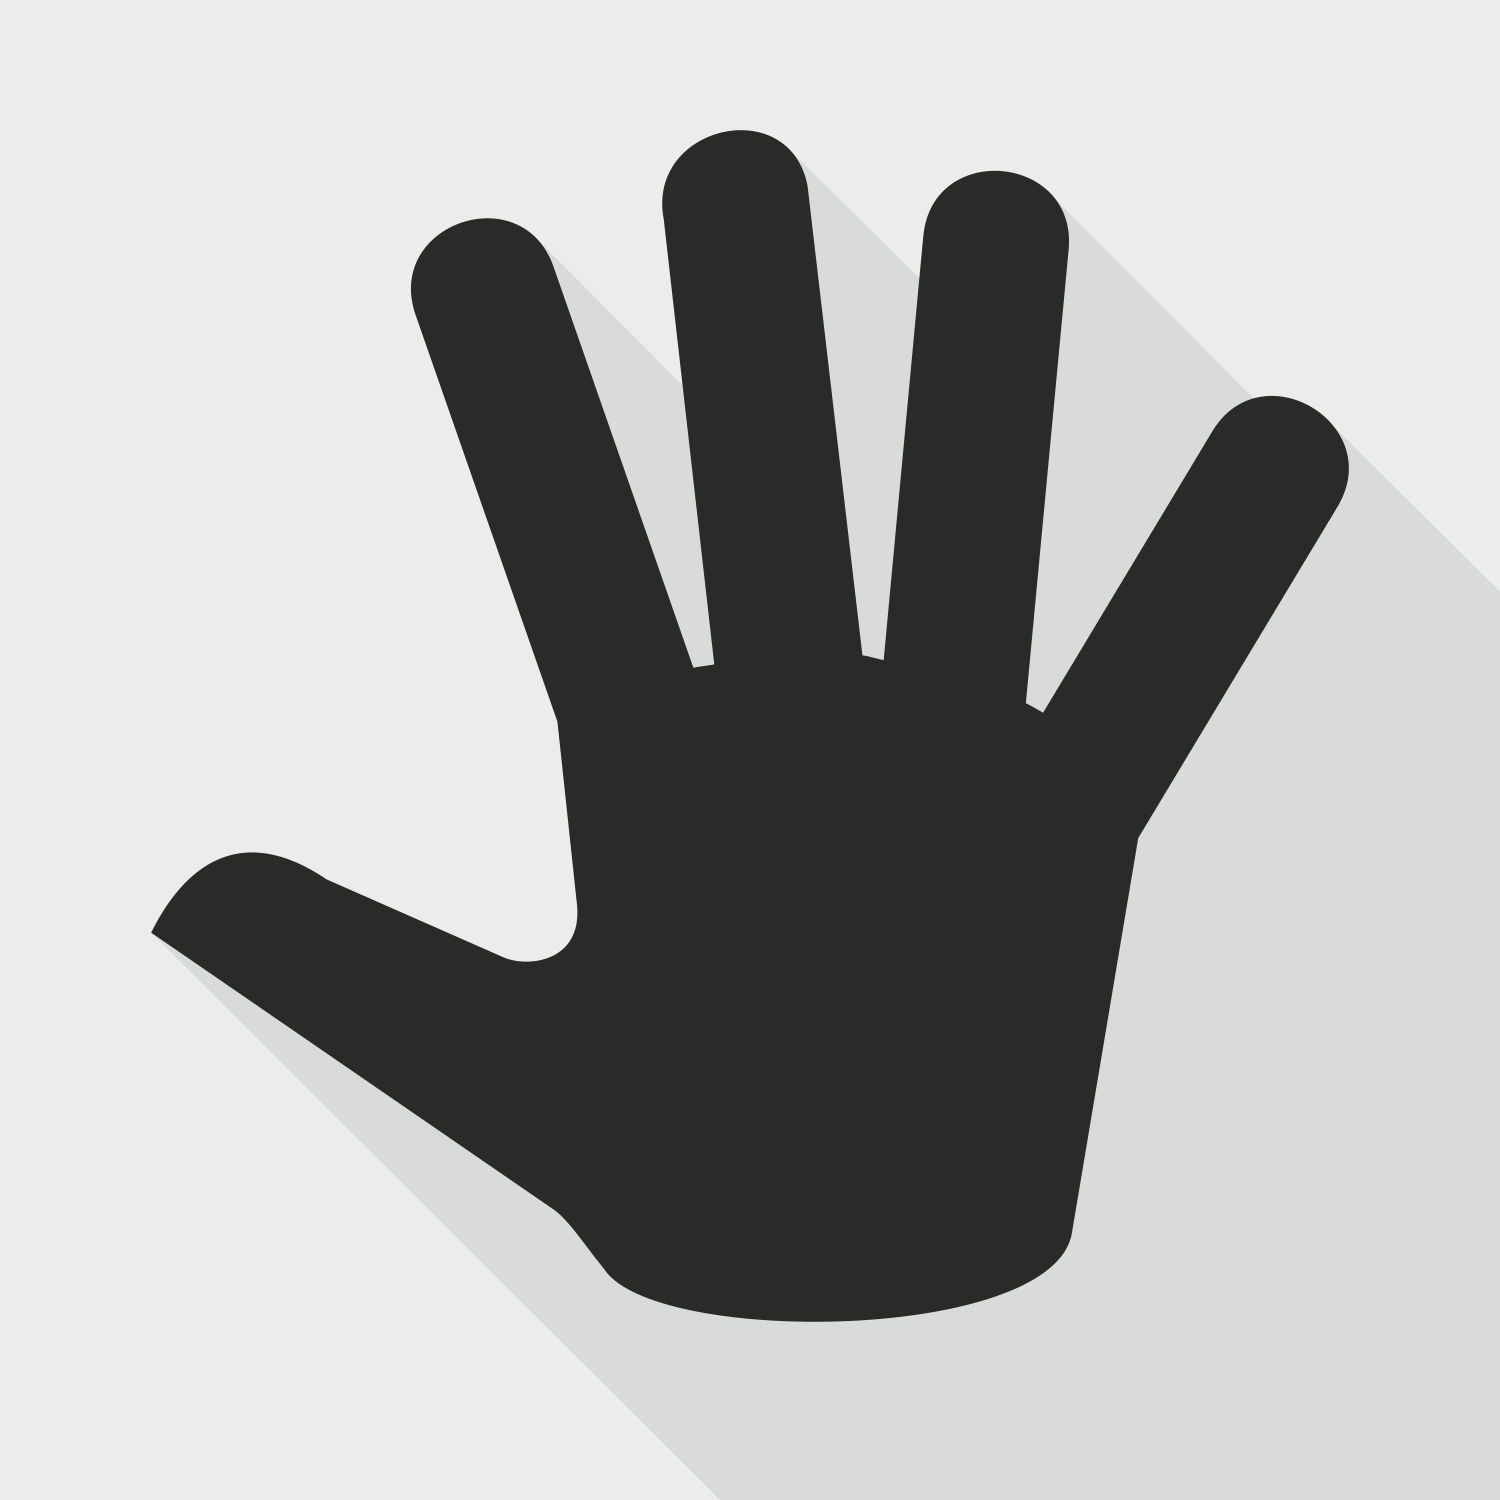 Free hand silhouette download. Clipart hands vector